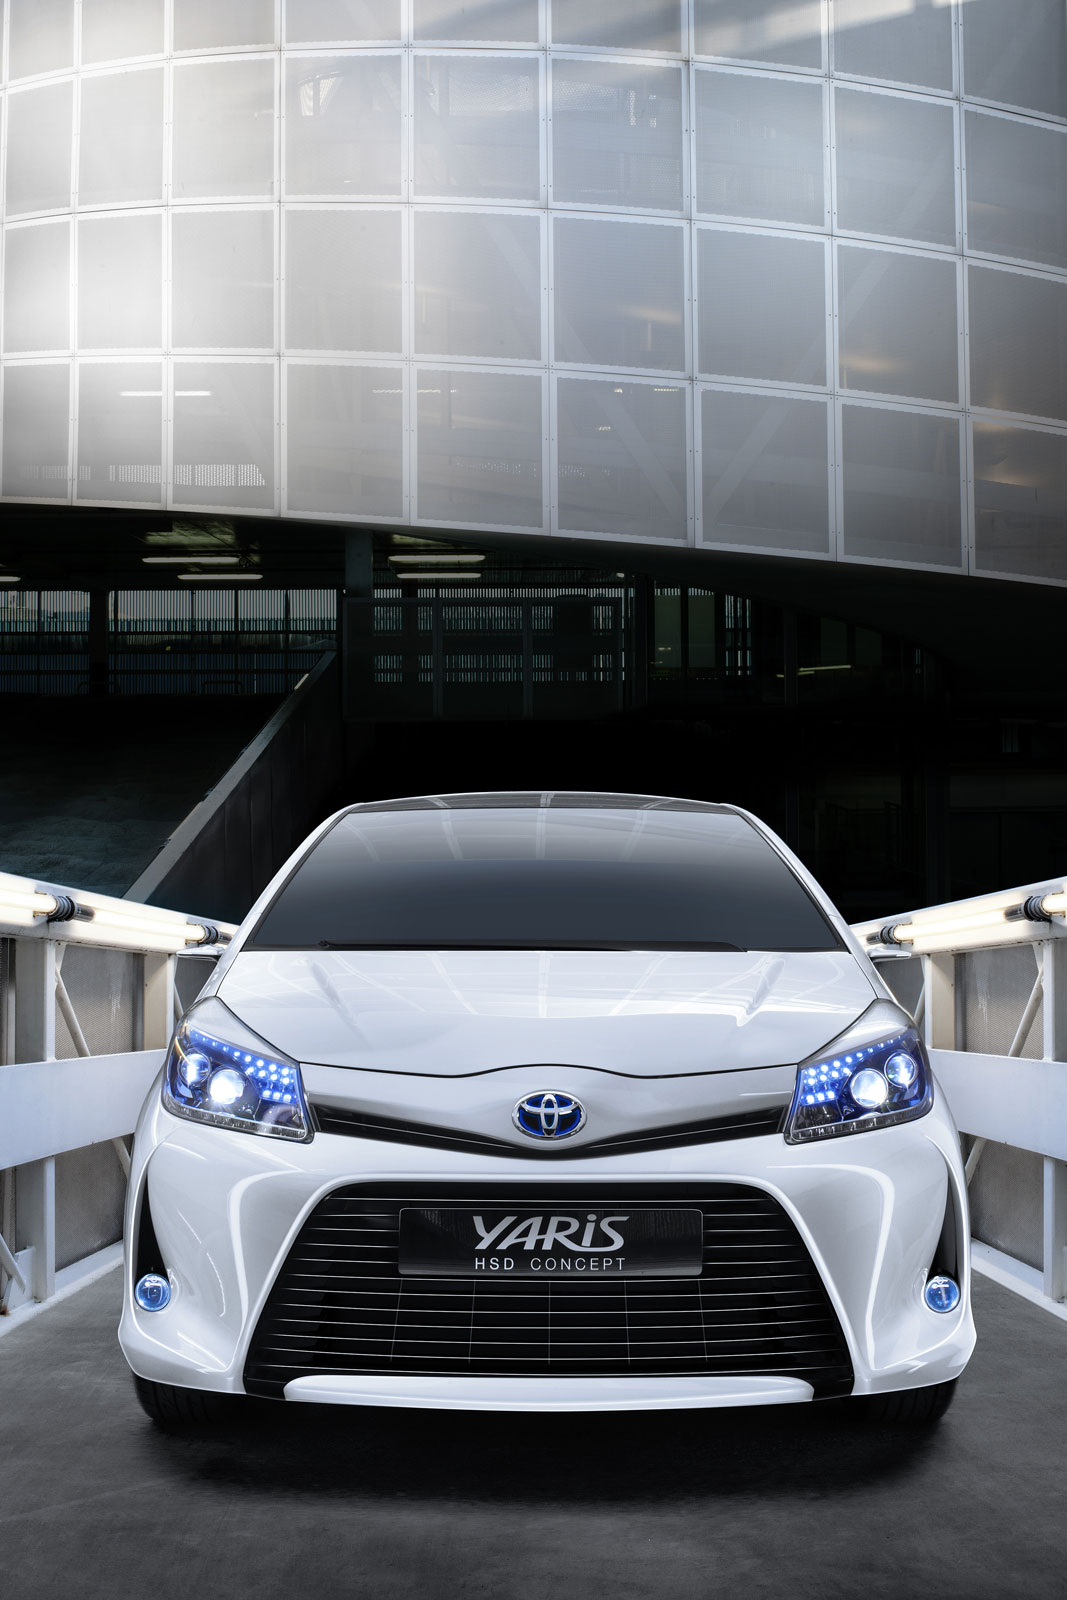 2019 Toyota Yaris HSD Concept photo - 3